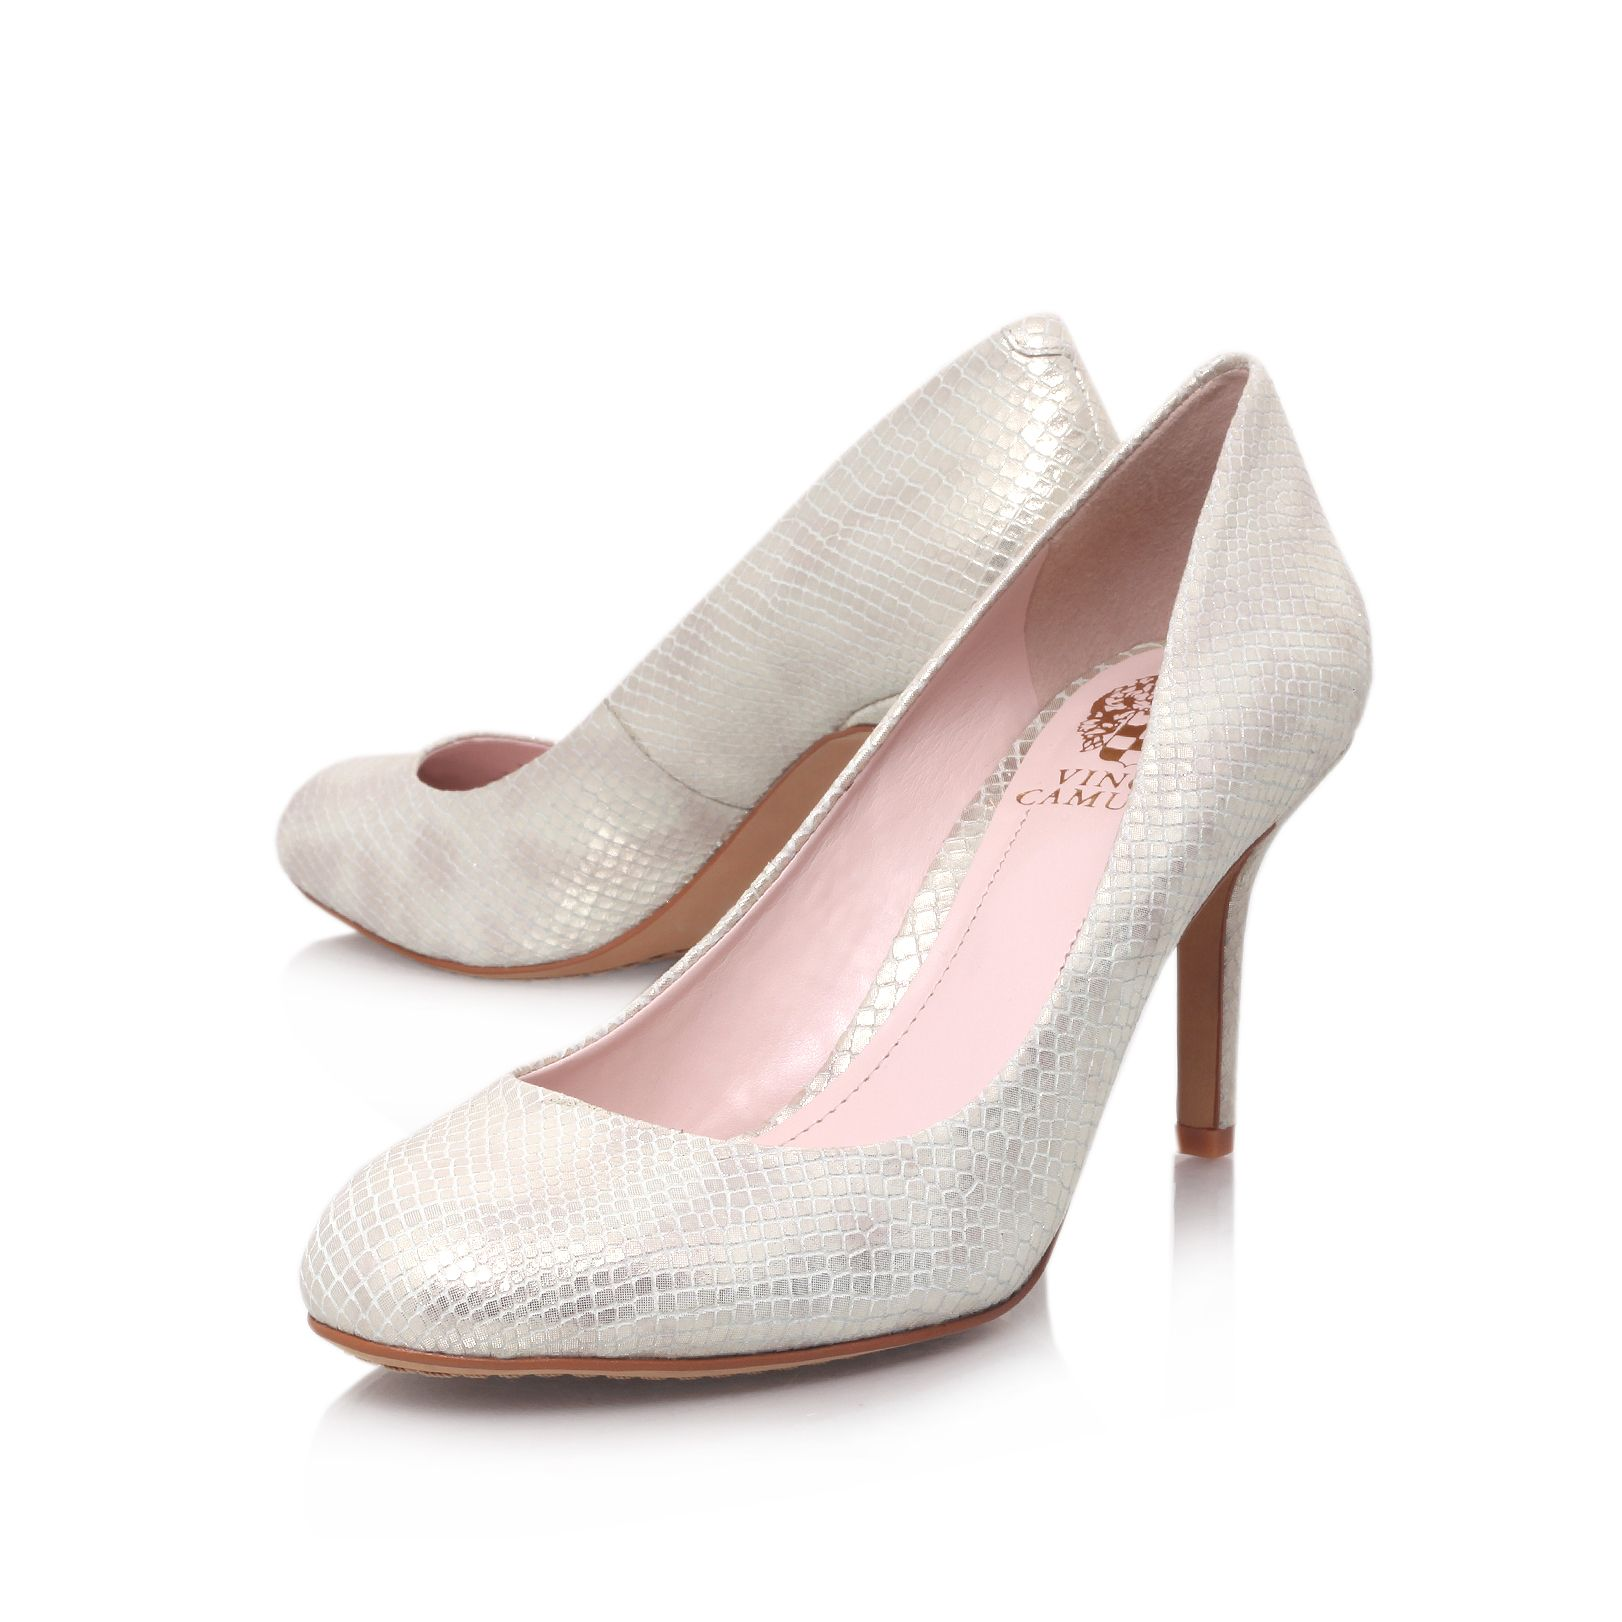 Sariah court shoes